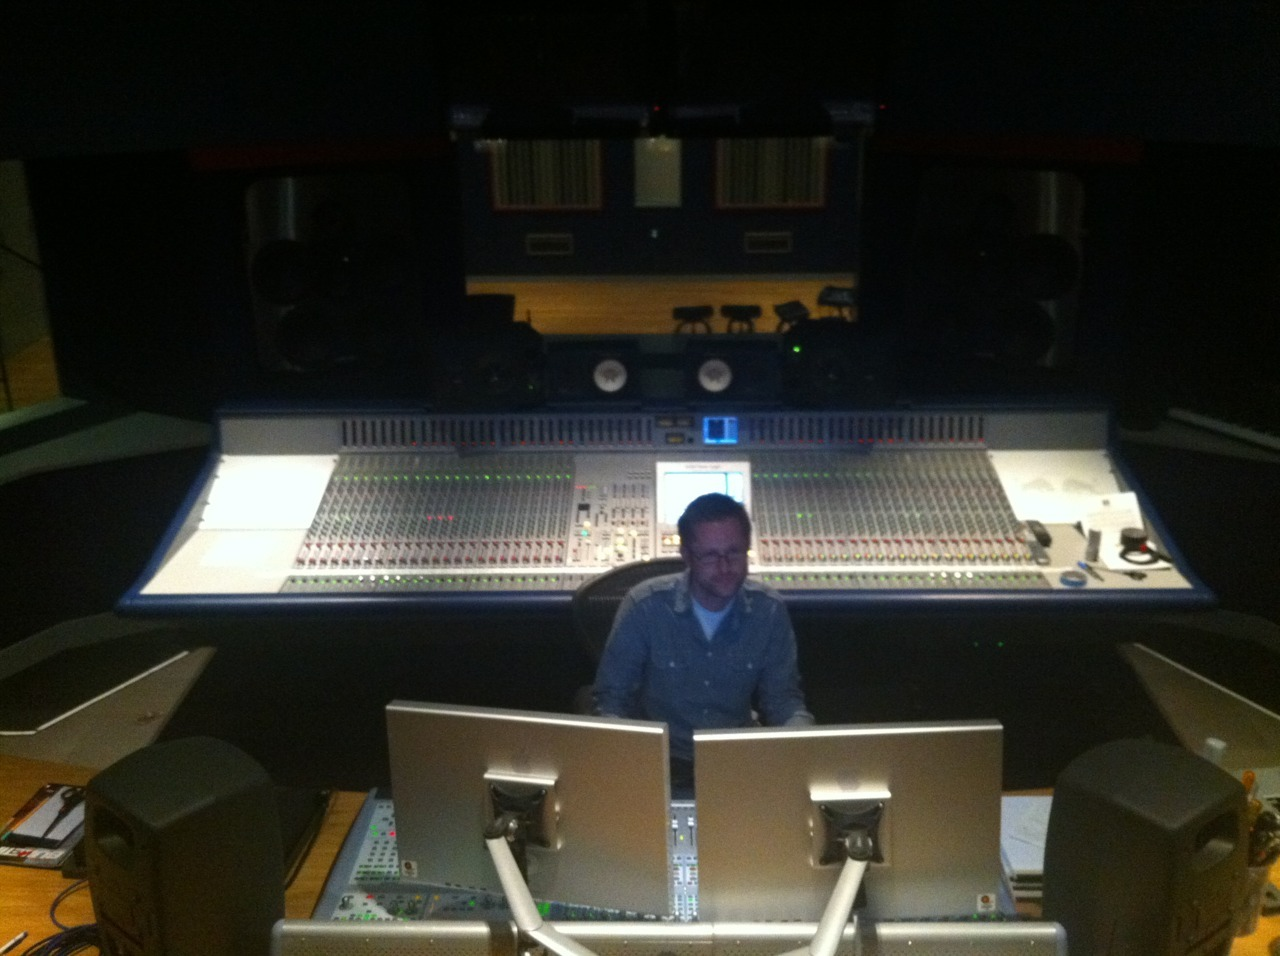 †oday is mixing @RedBullStudioLA. E. S†enman in †he house. Yeaugh!